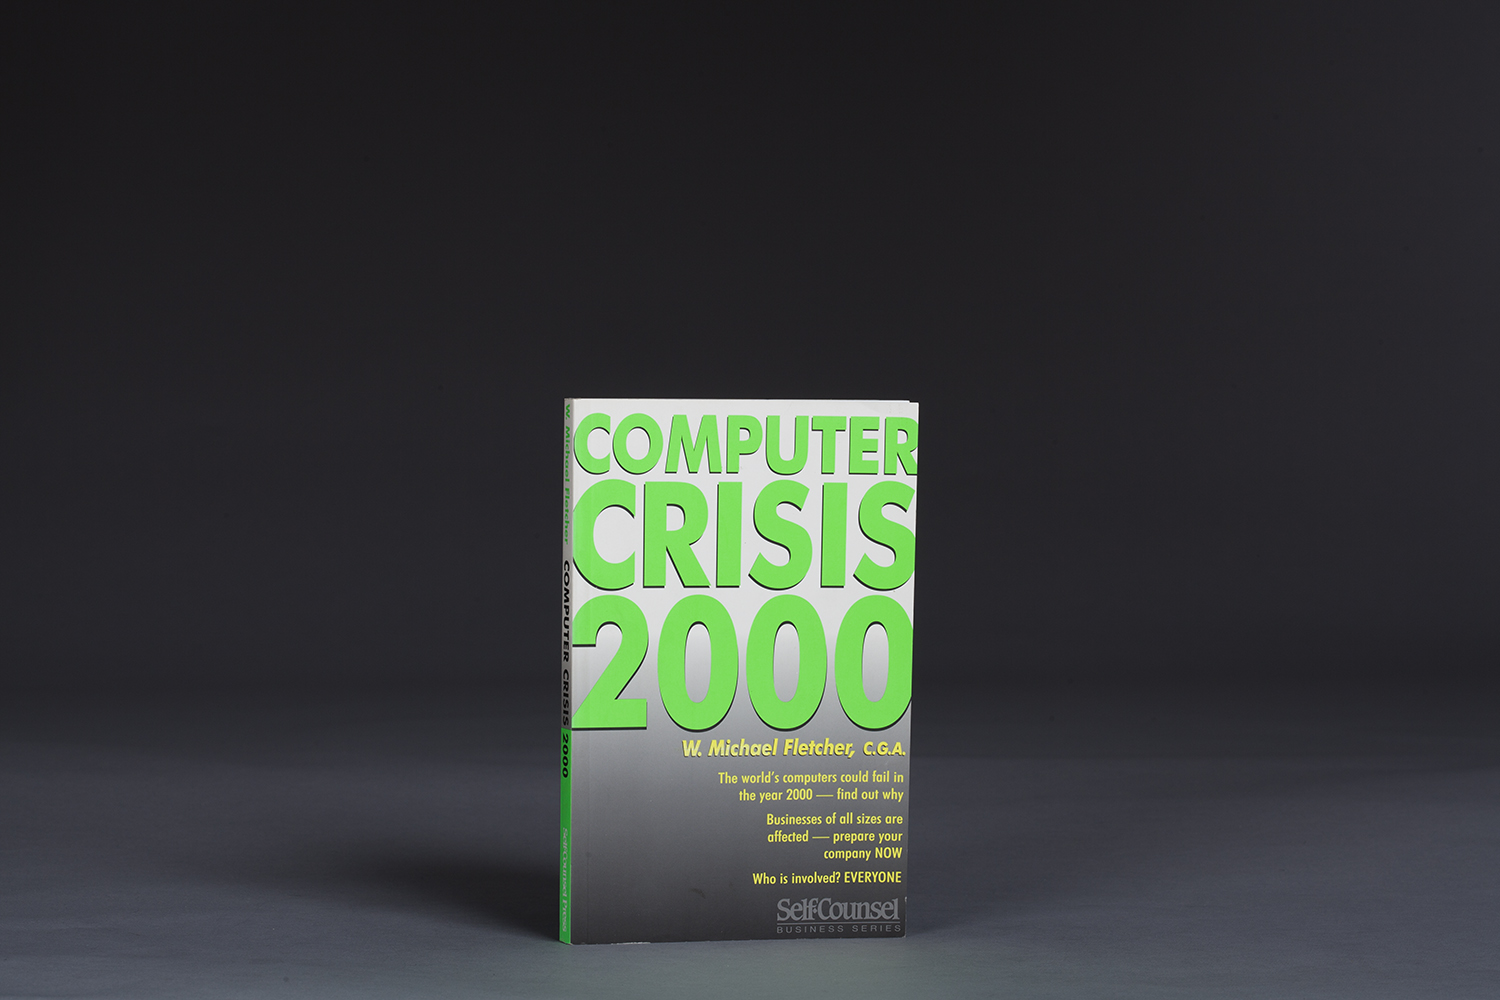 Computer Crisis 2000 - 0409 Cover.jpg